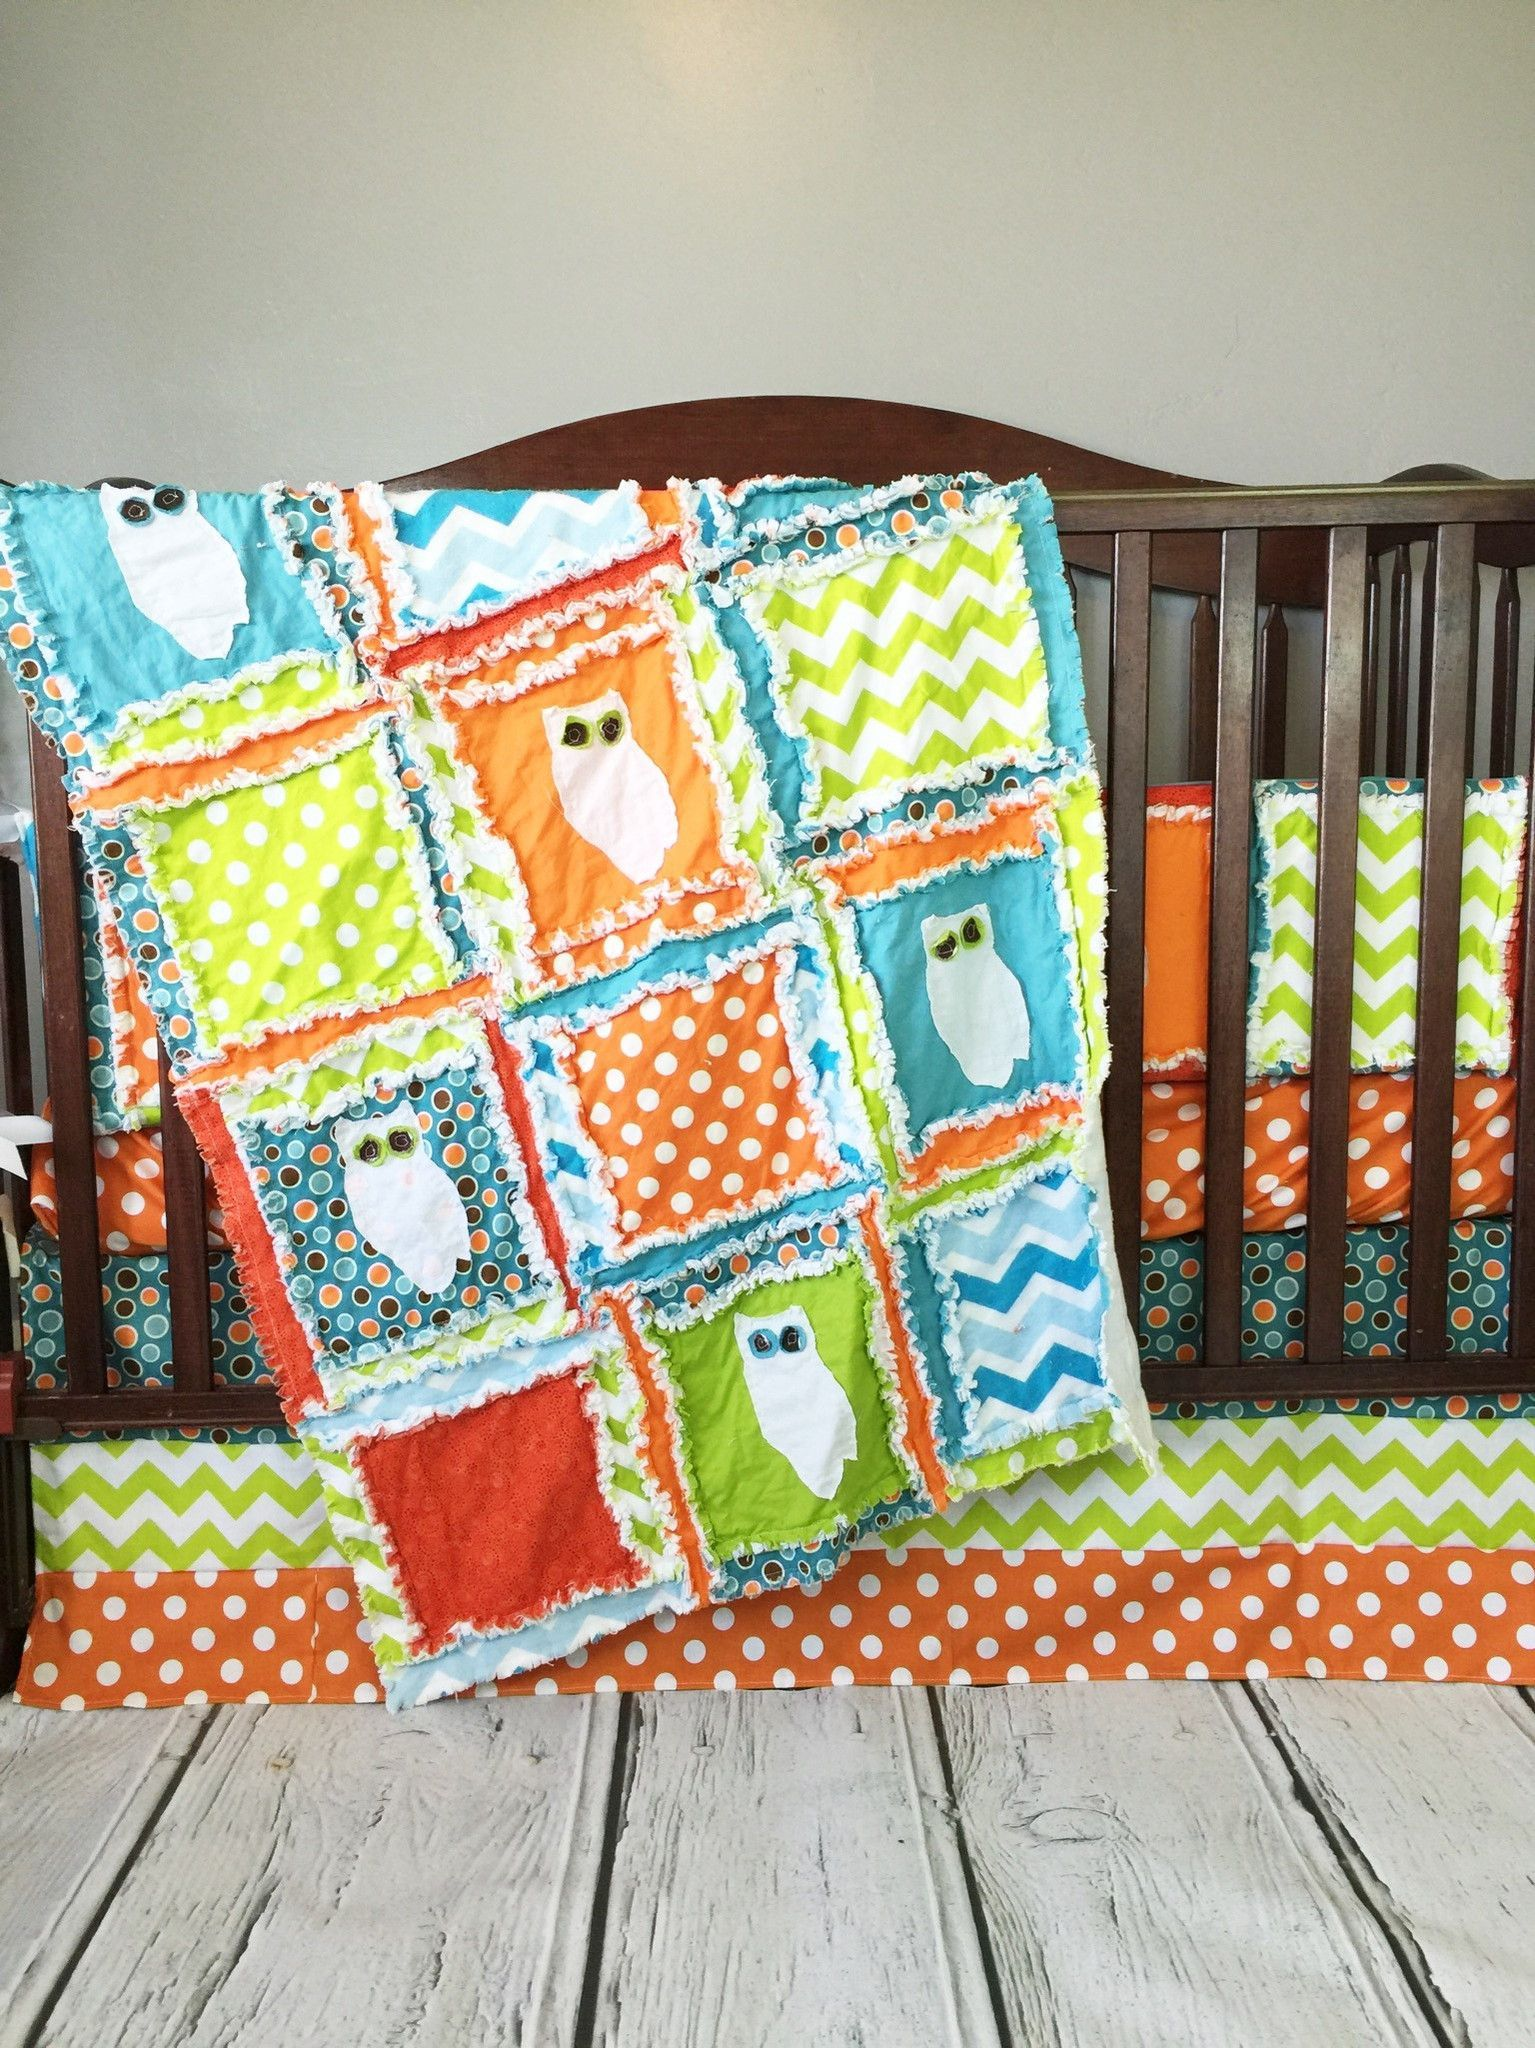 Orange owl crib bedding - Owl Crib Bedding In Orange Blue And Green With Applique Owls On The